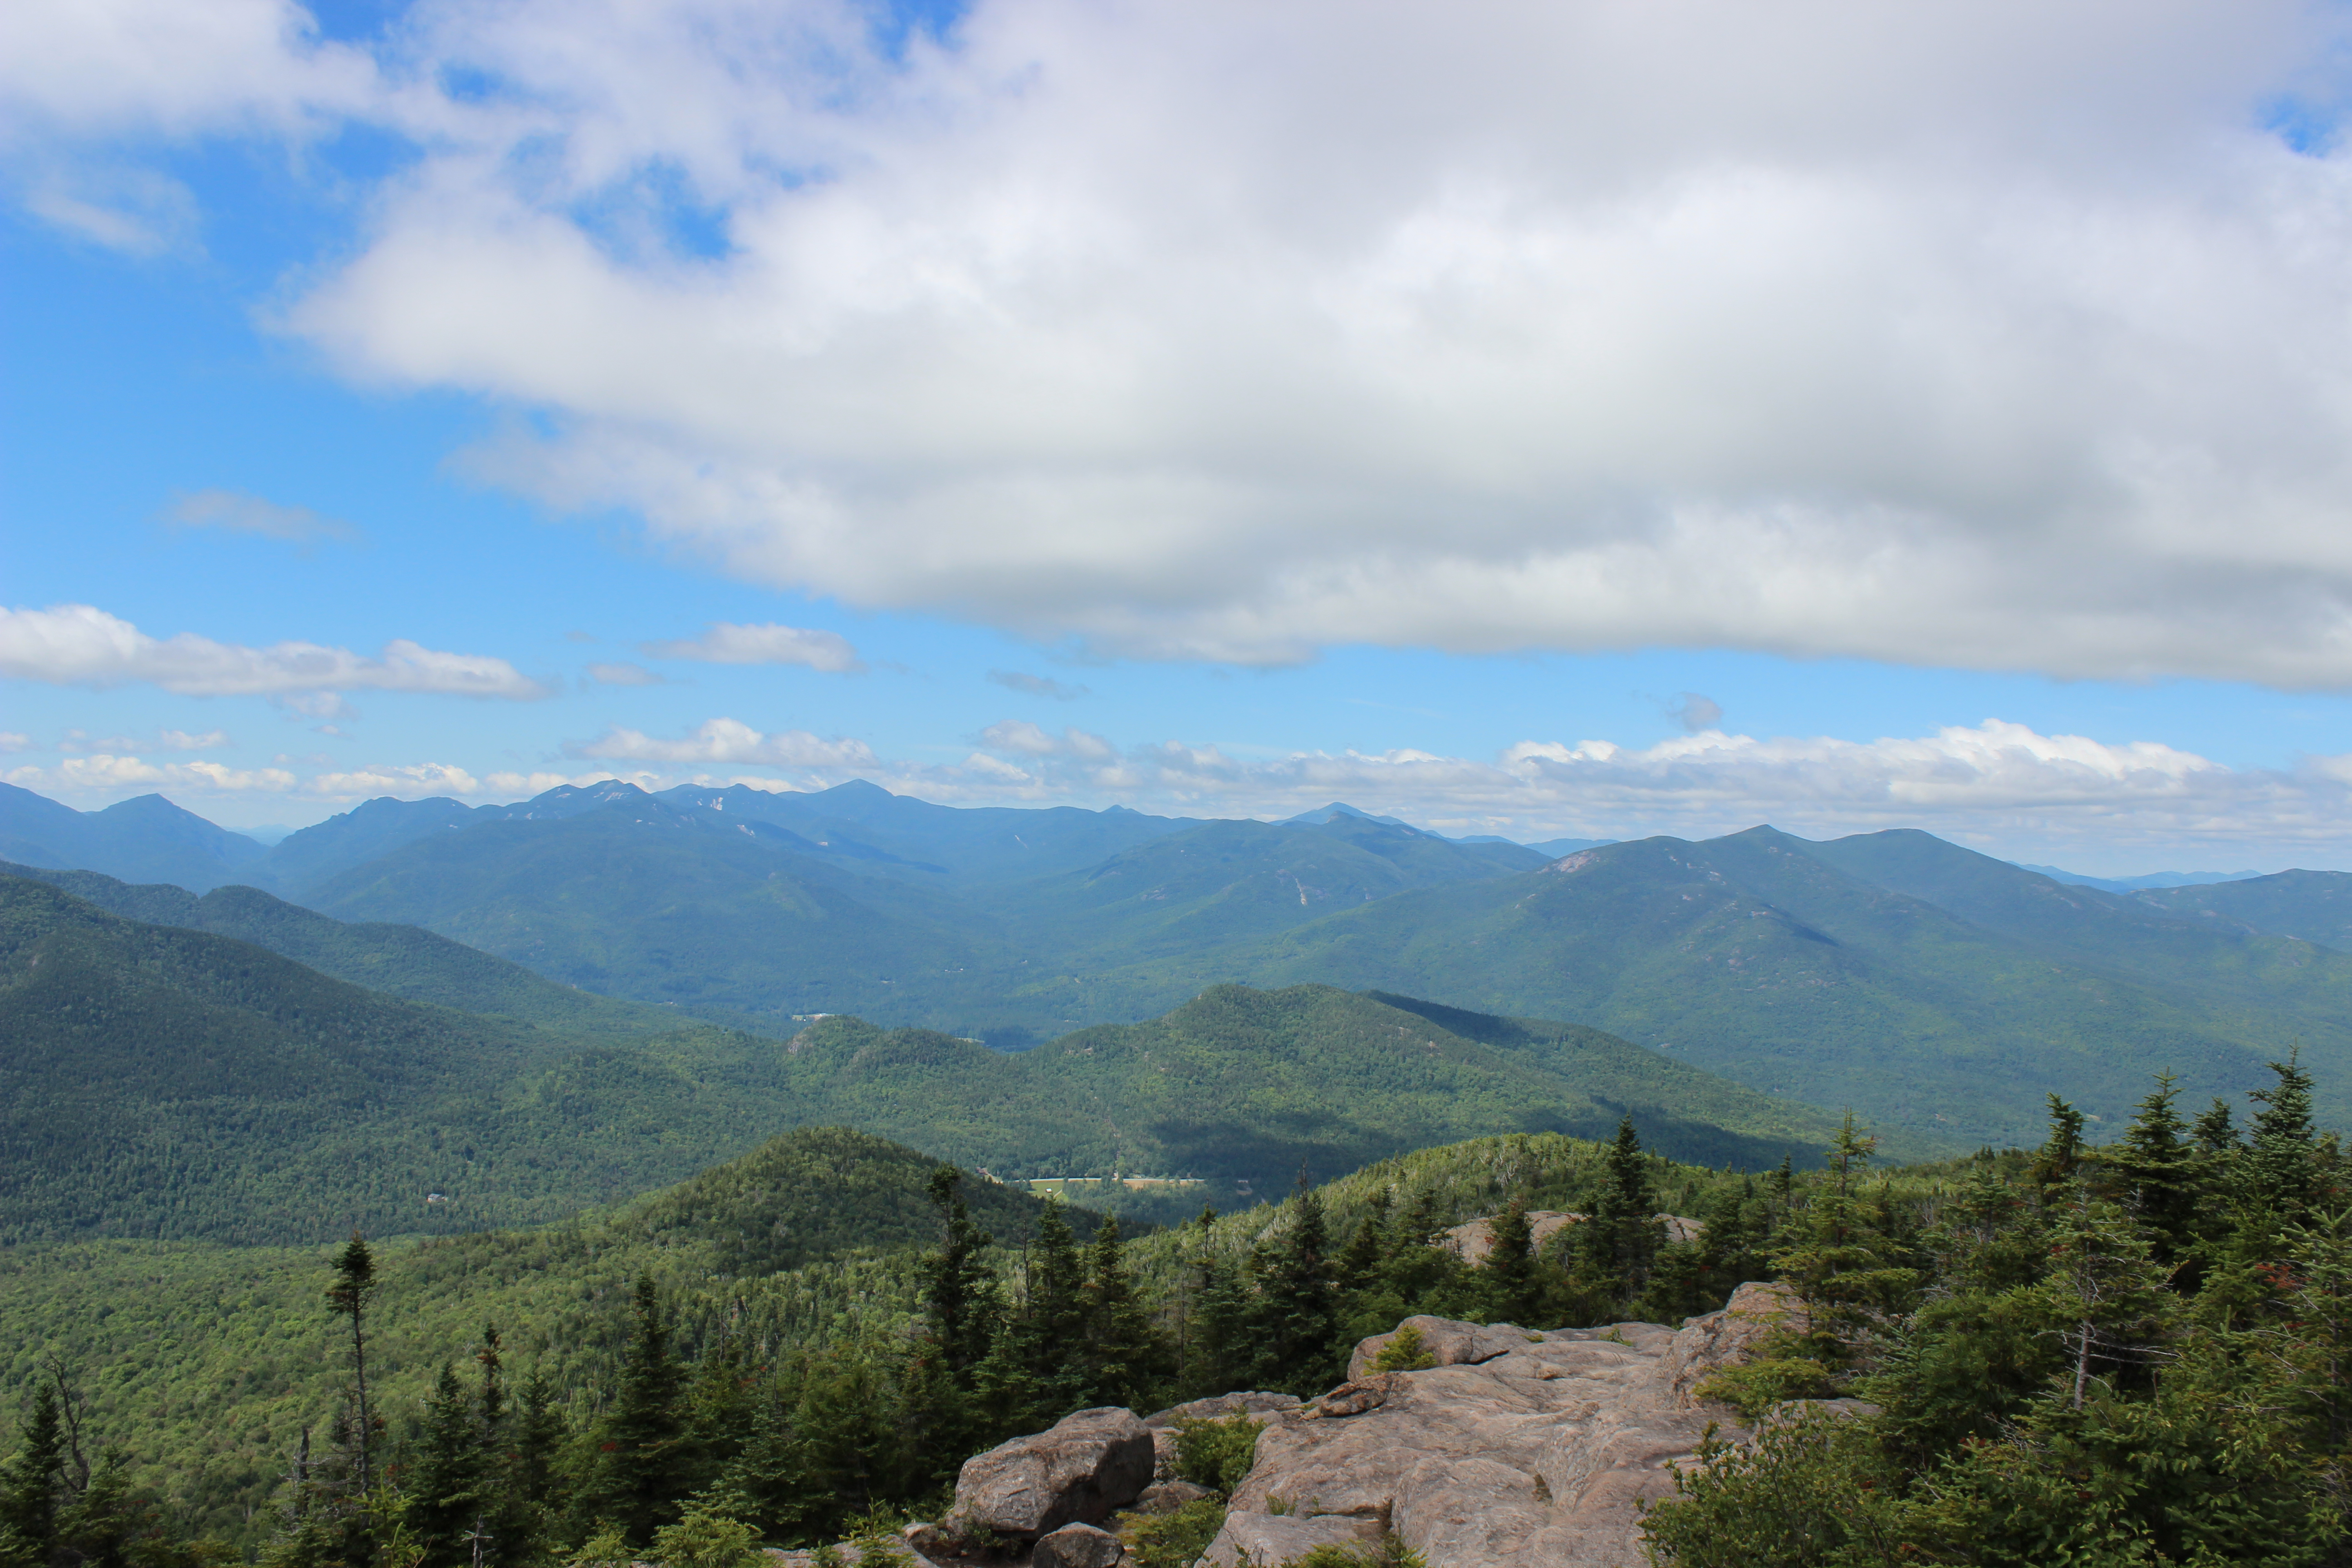 Landforms Of Maryland, A Beautiful View From An Adirondack Mountaintop, Landforms Of Maryland